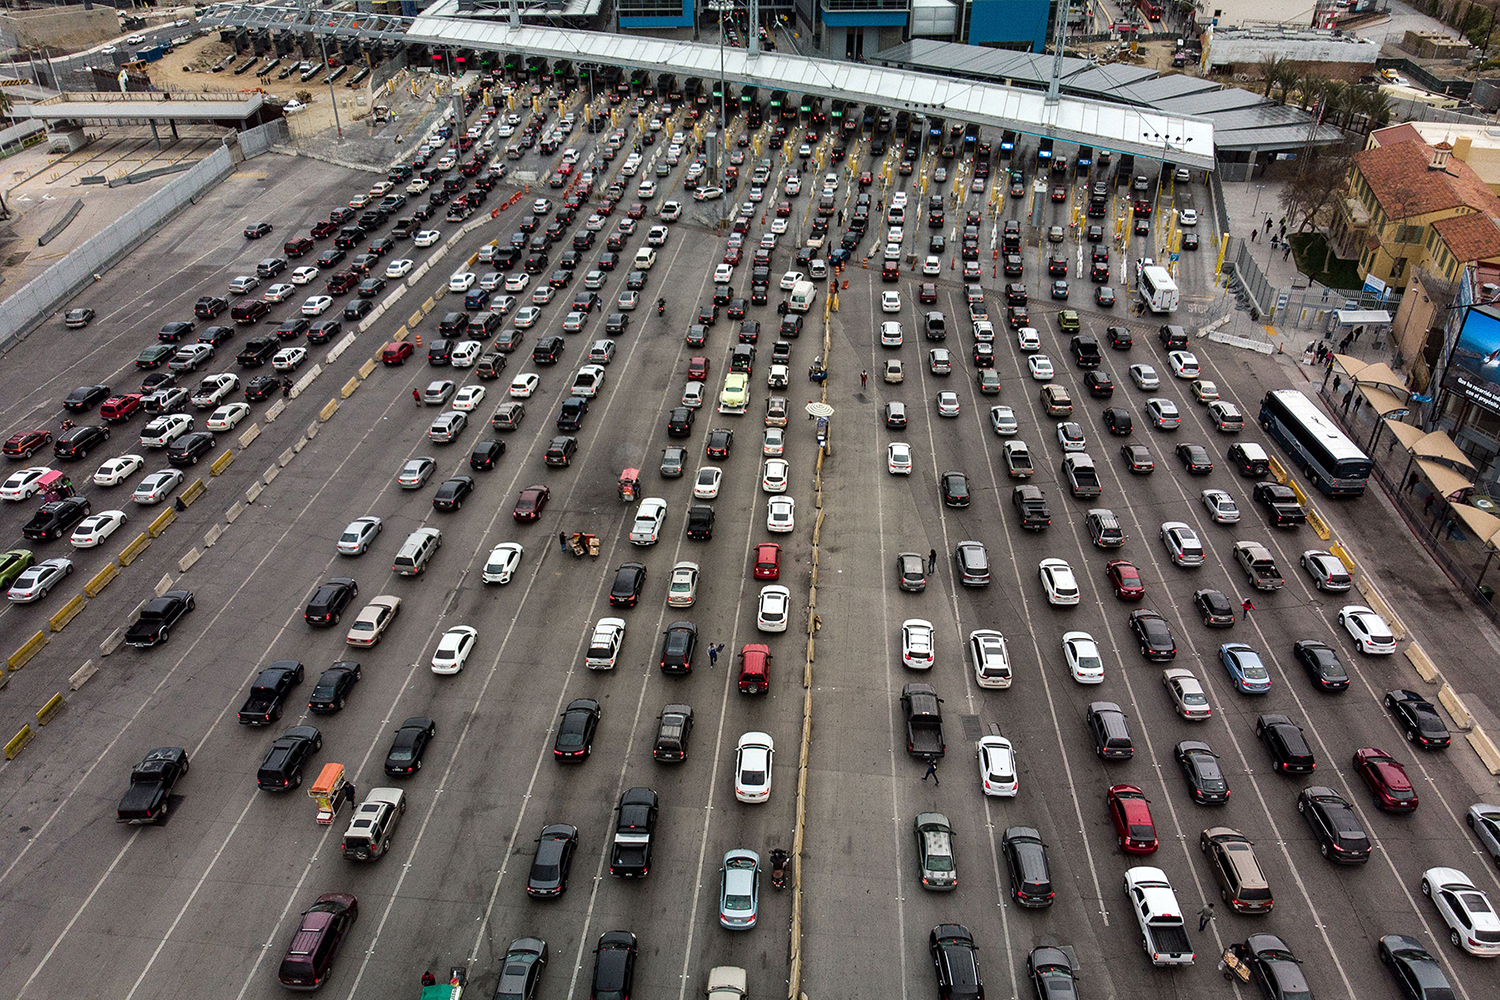 Cars line up at the San Ysidro crossing port headed from Tijuana in Mexico to San Diego in the United States on April 4. GUILLERMO ARIAS/AFP/Getty Images